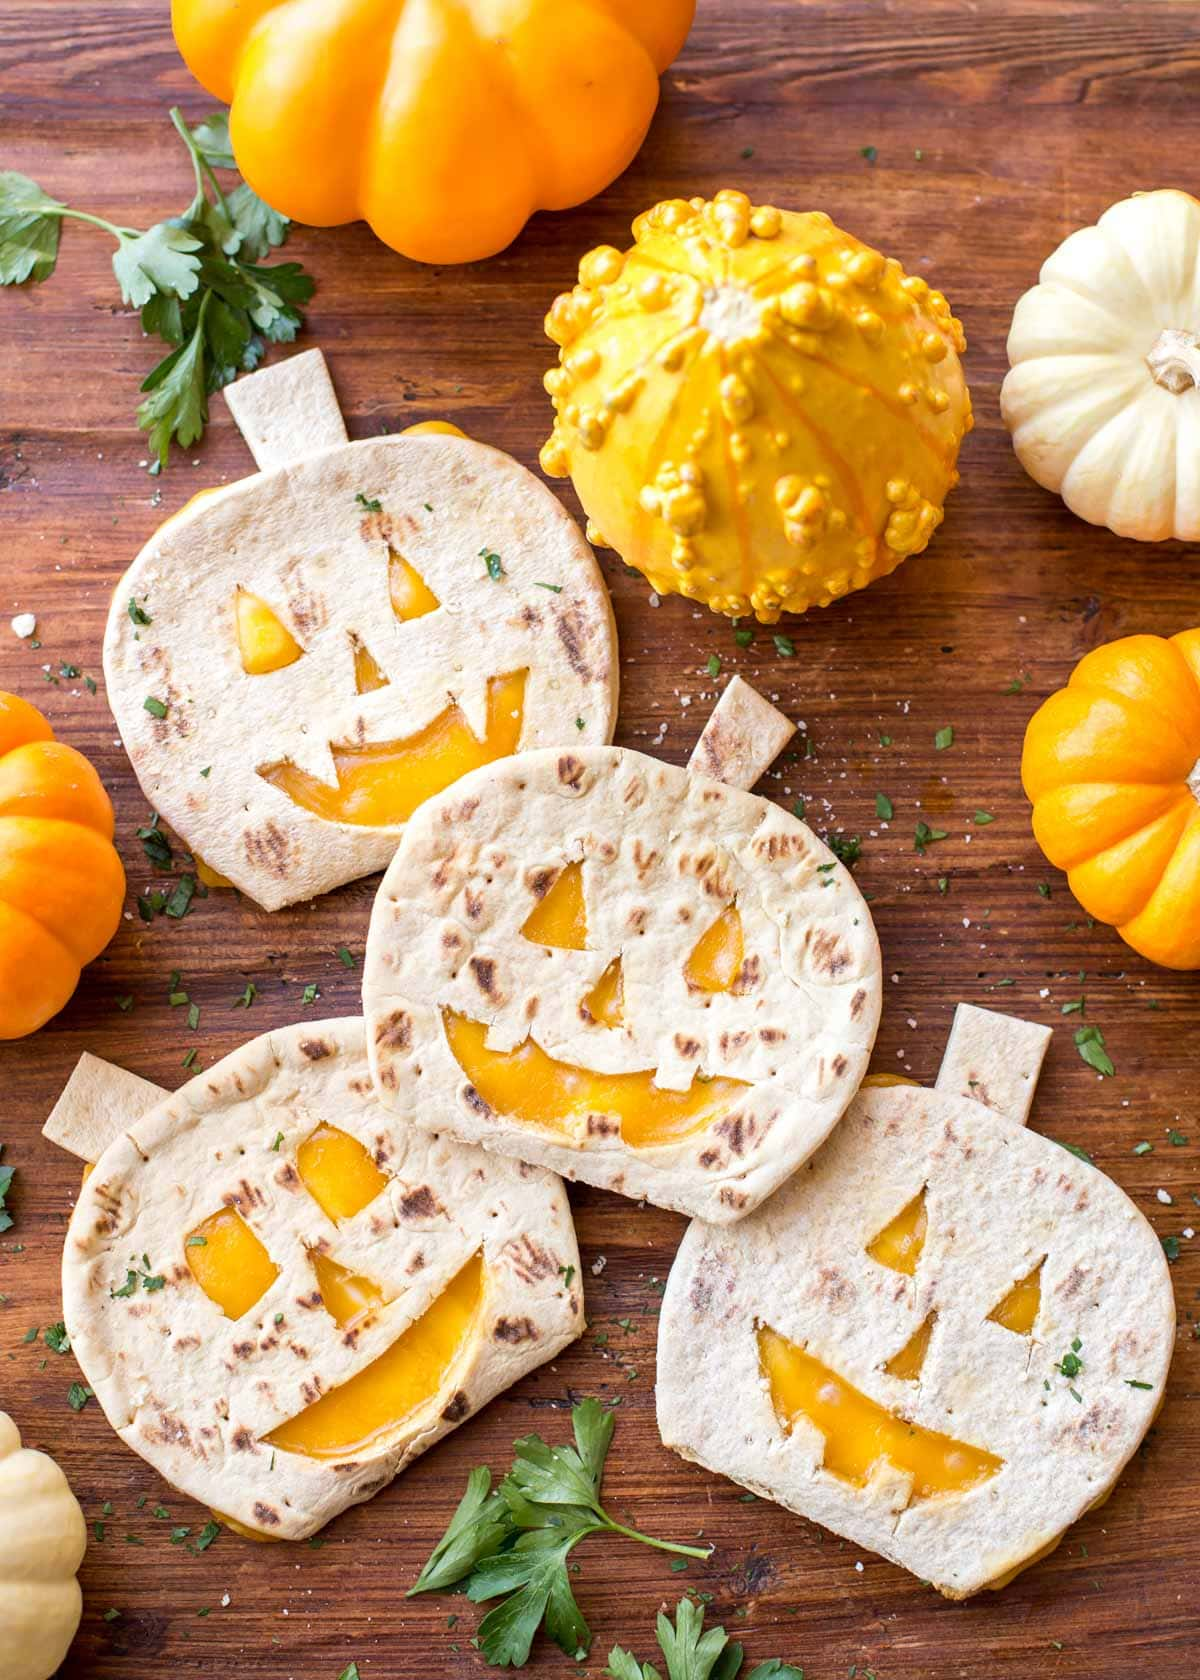 Pumpkin quesadillas shaped scattered next to gourds